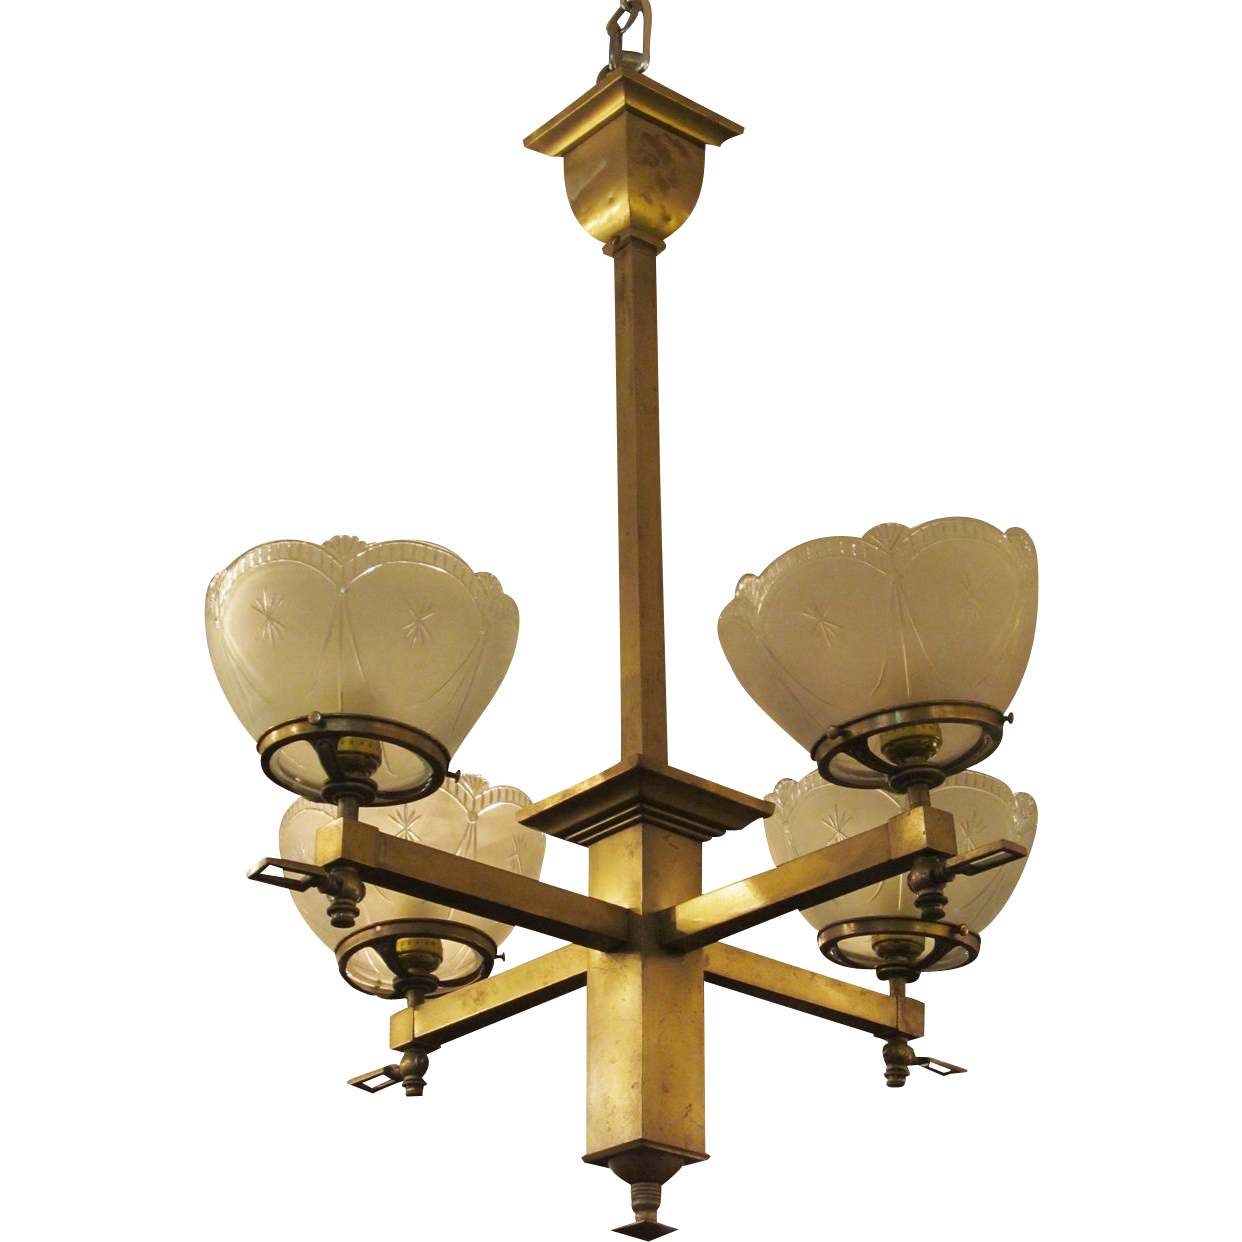 Brass chandelier with etched glass shades